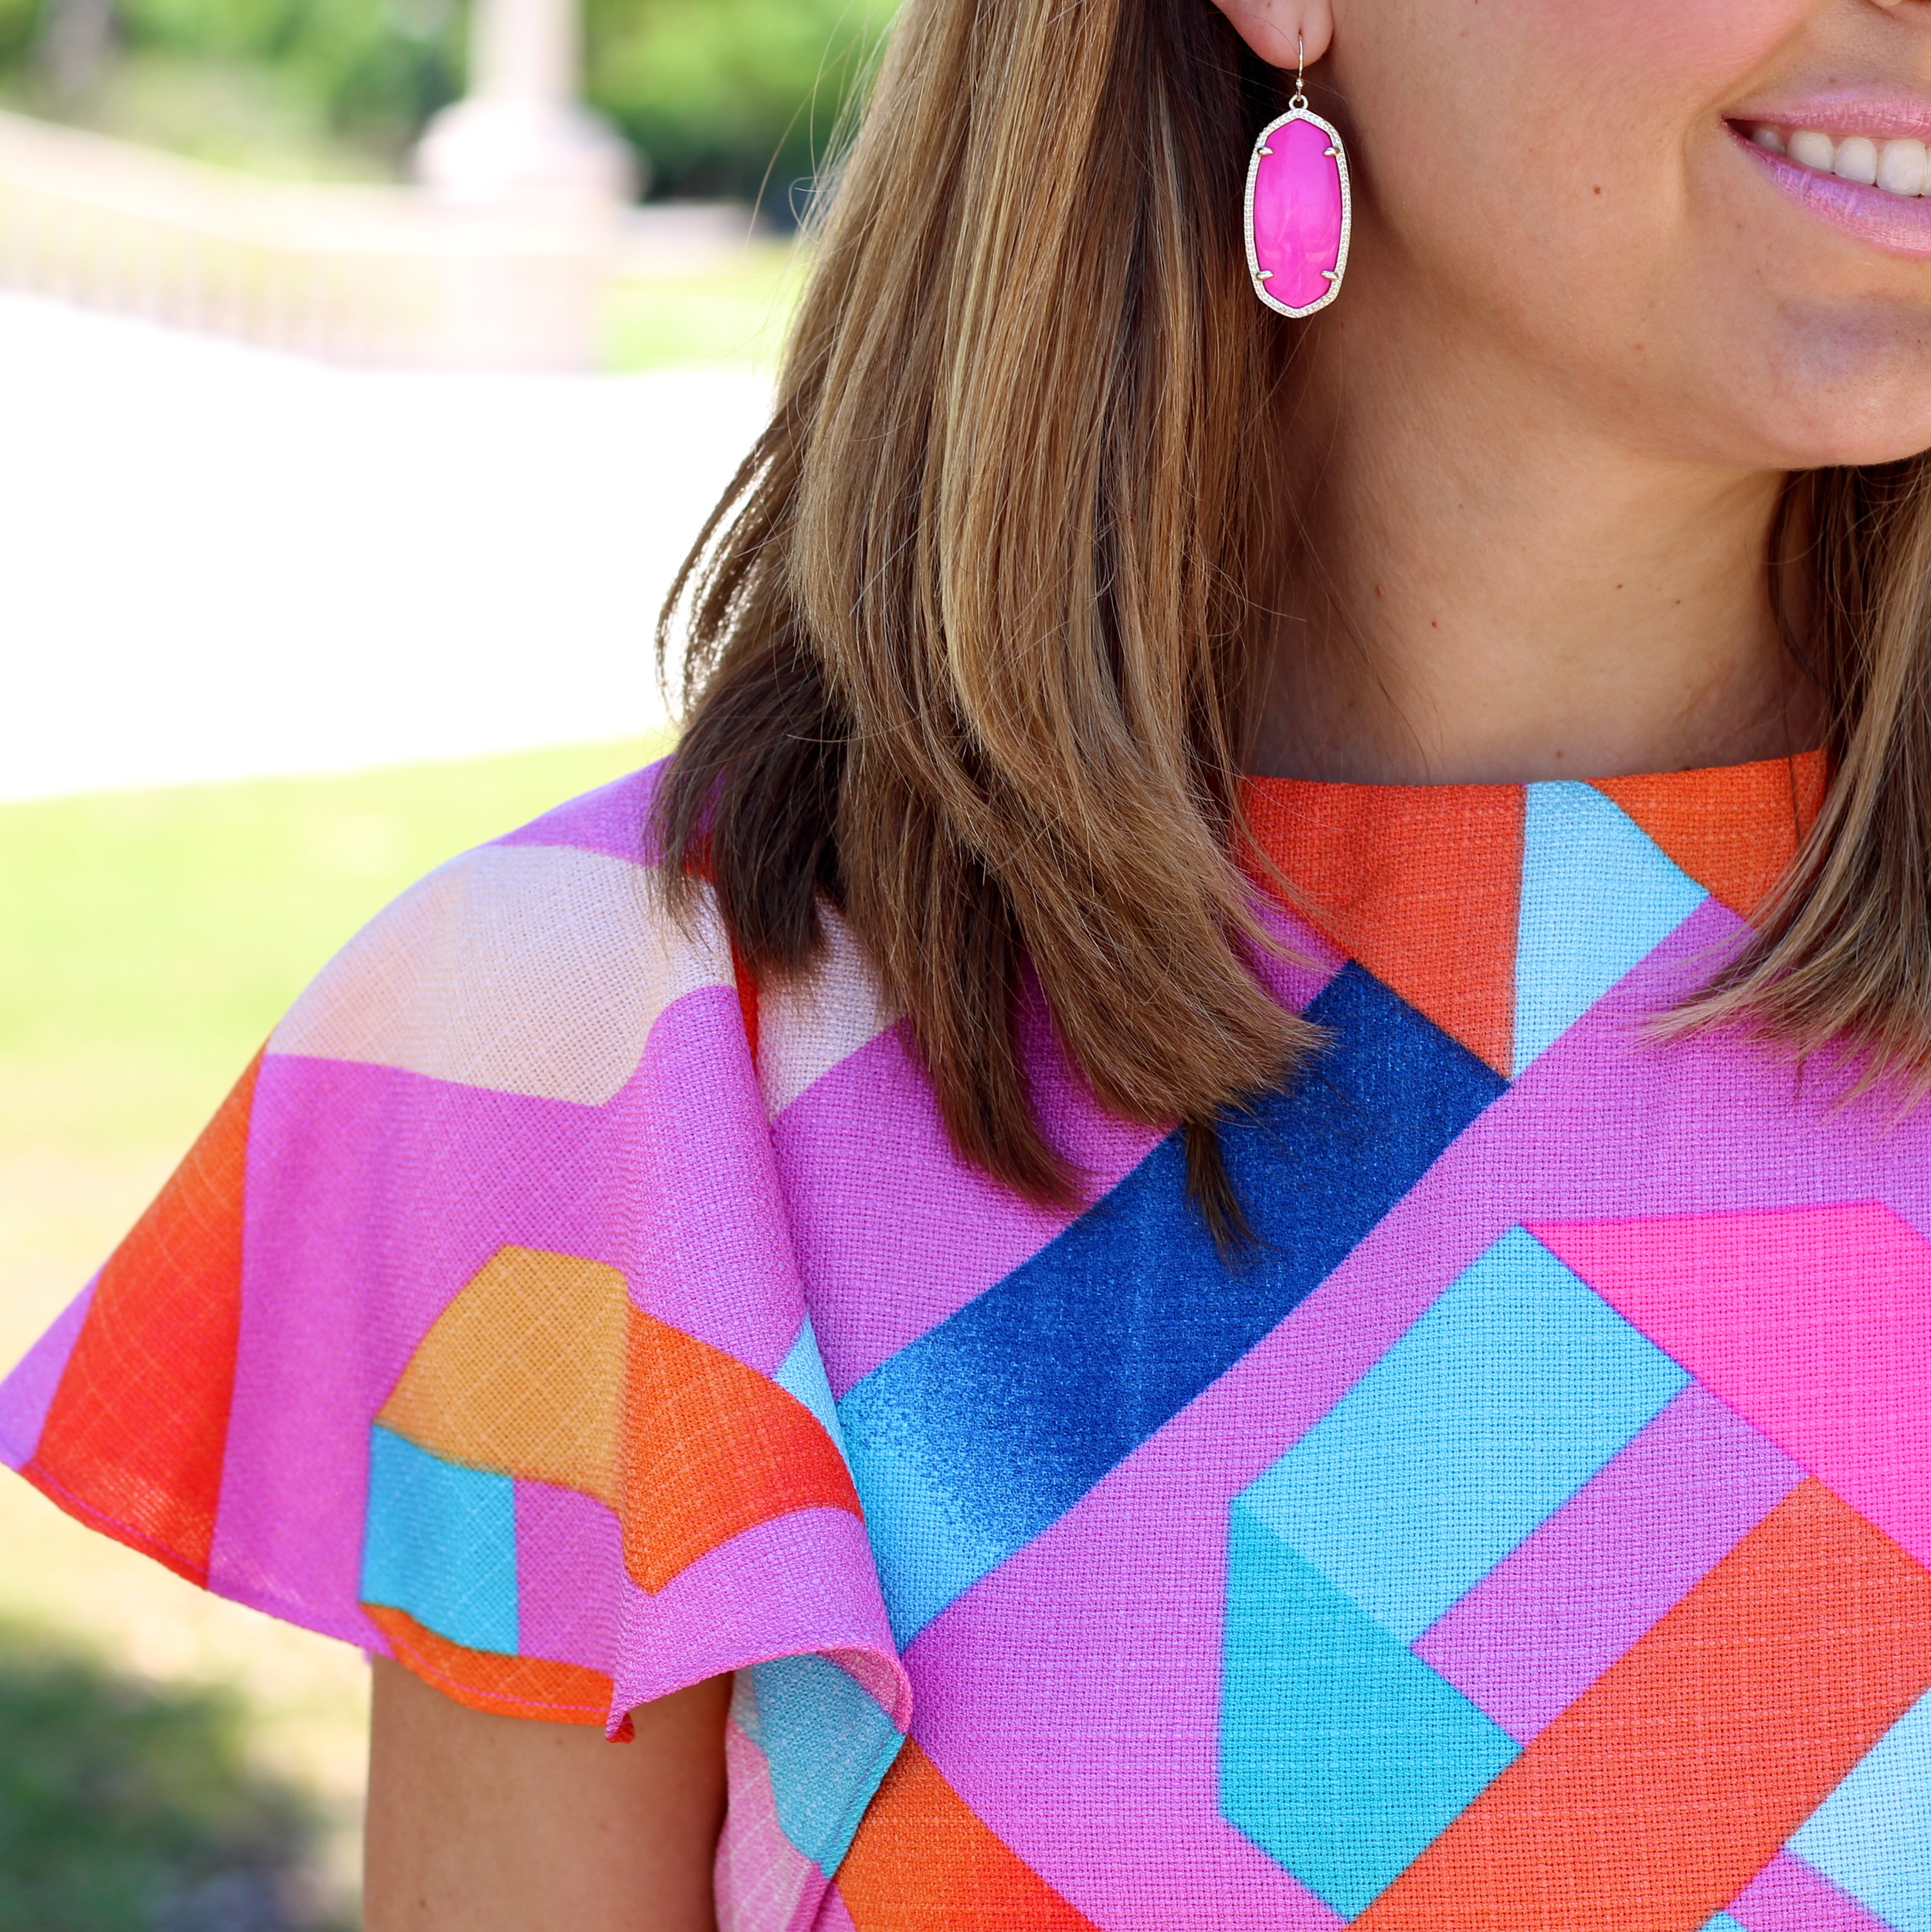 Ruffle sleeve dress, Kendra Scott pink earrings